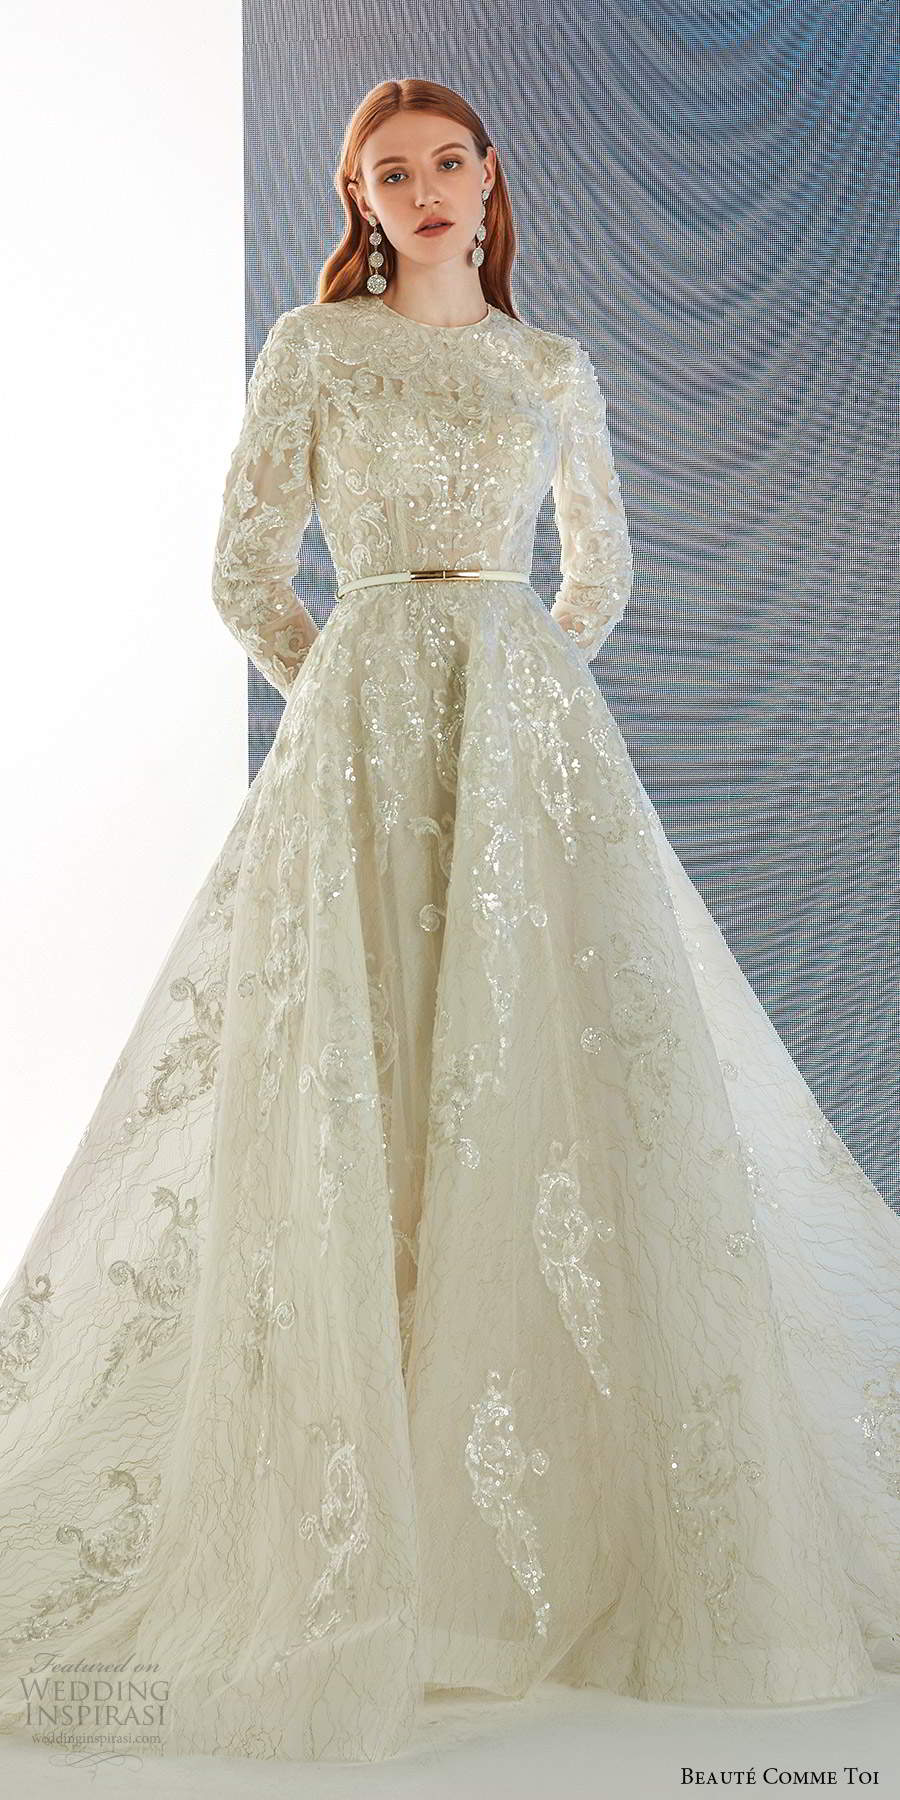 beaute comme toi fall 2021 bridal long sleeves jewel neckline fully embellished a line ball gown wedding dress chapel train (3) lv